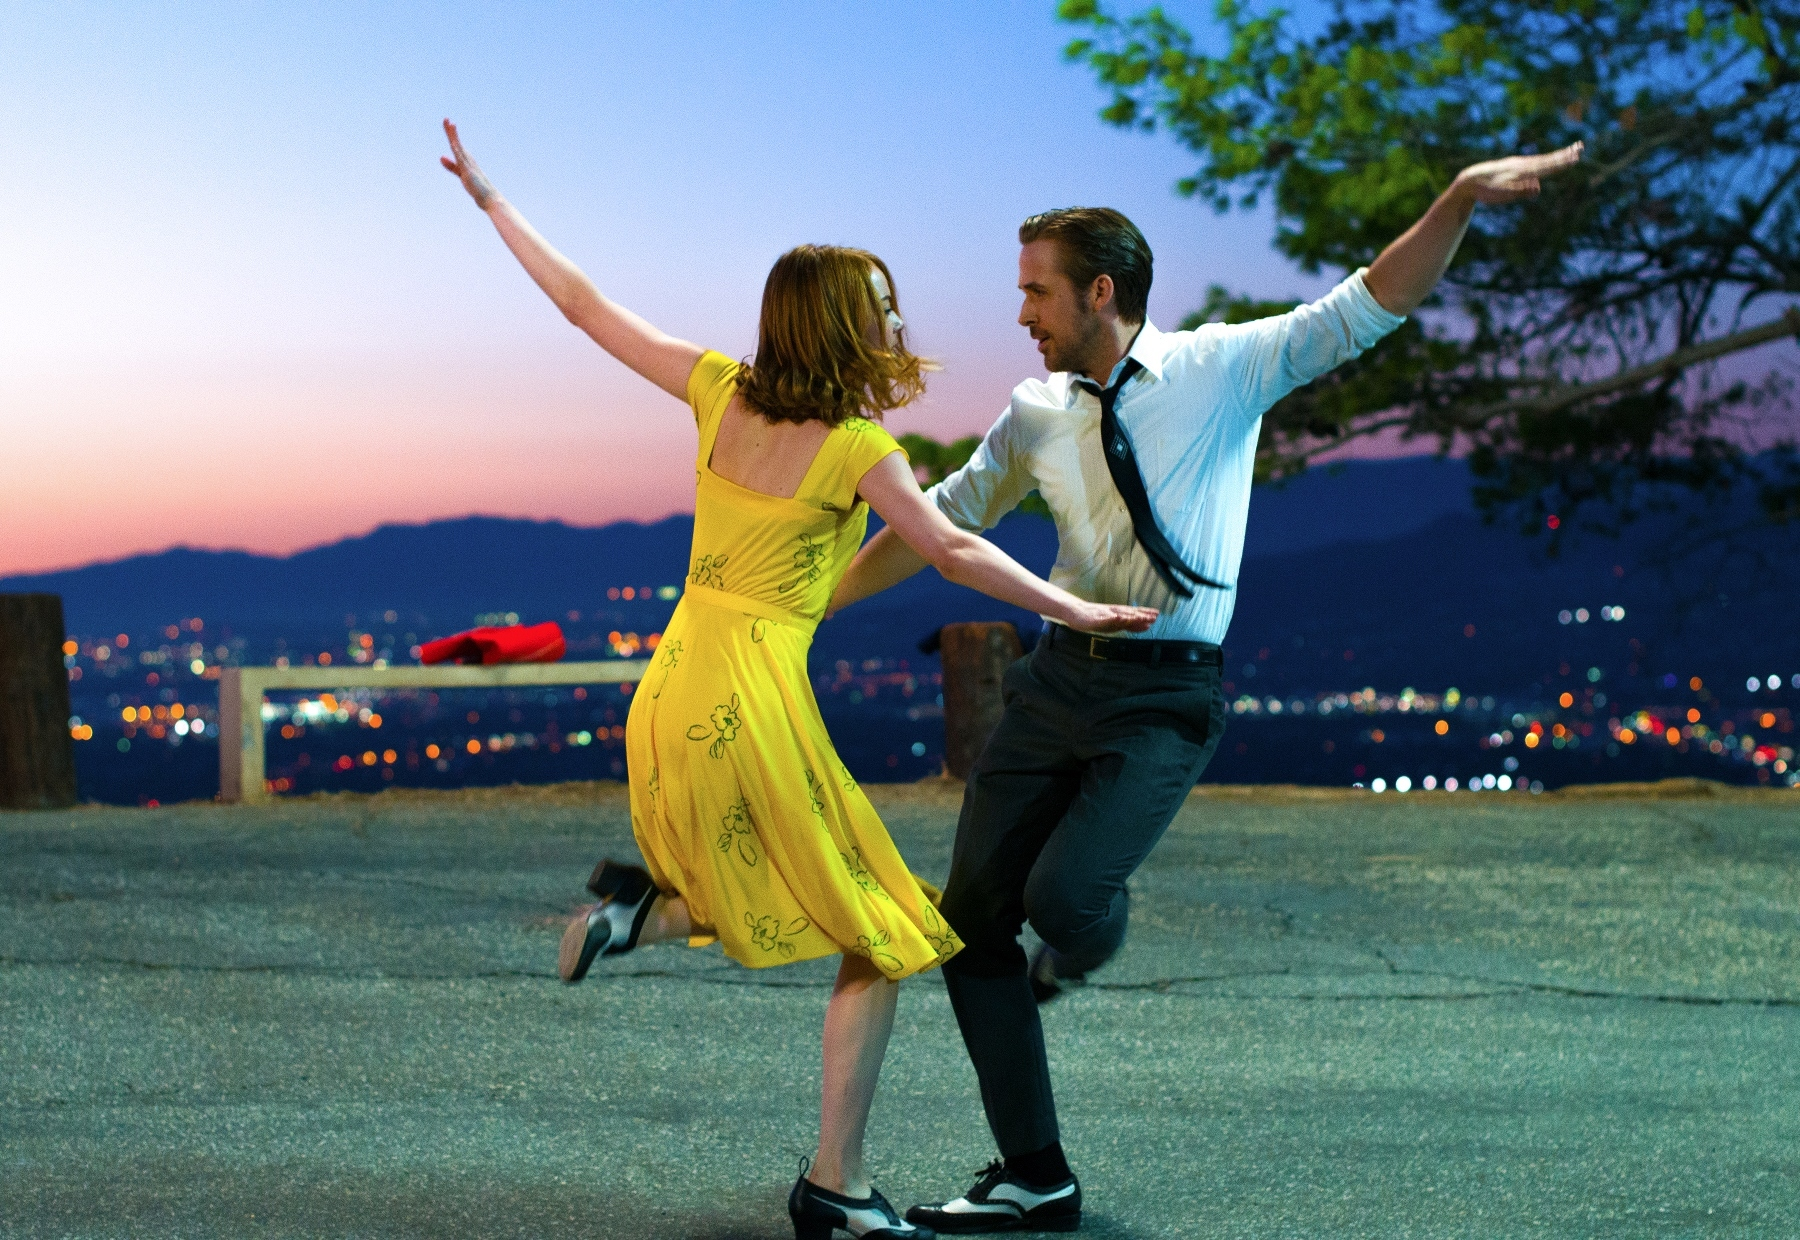 (C) 2017 Summit Entertainment, LLC. All Rights Reserved. EW0001: Sebastian (Ryan Gosling) and Mia (Emma Stone) in LA LA LAND.Photo courtesy of Lionsgate